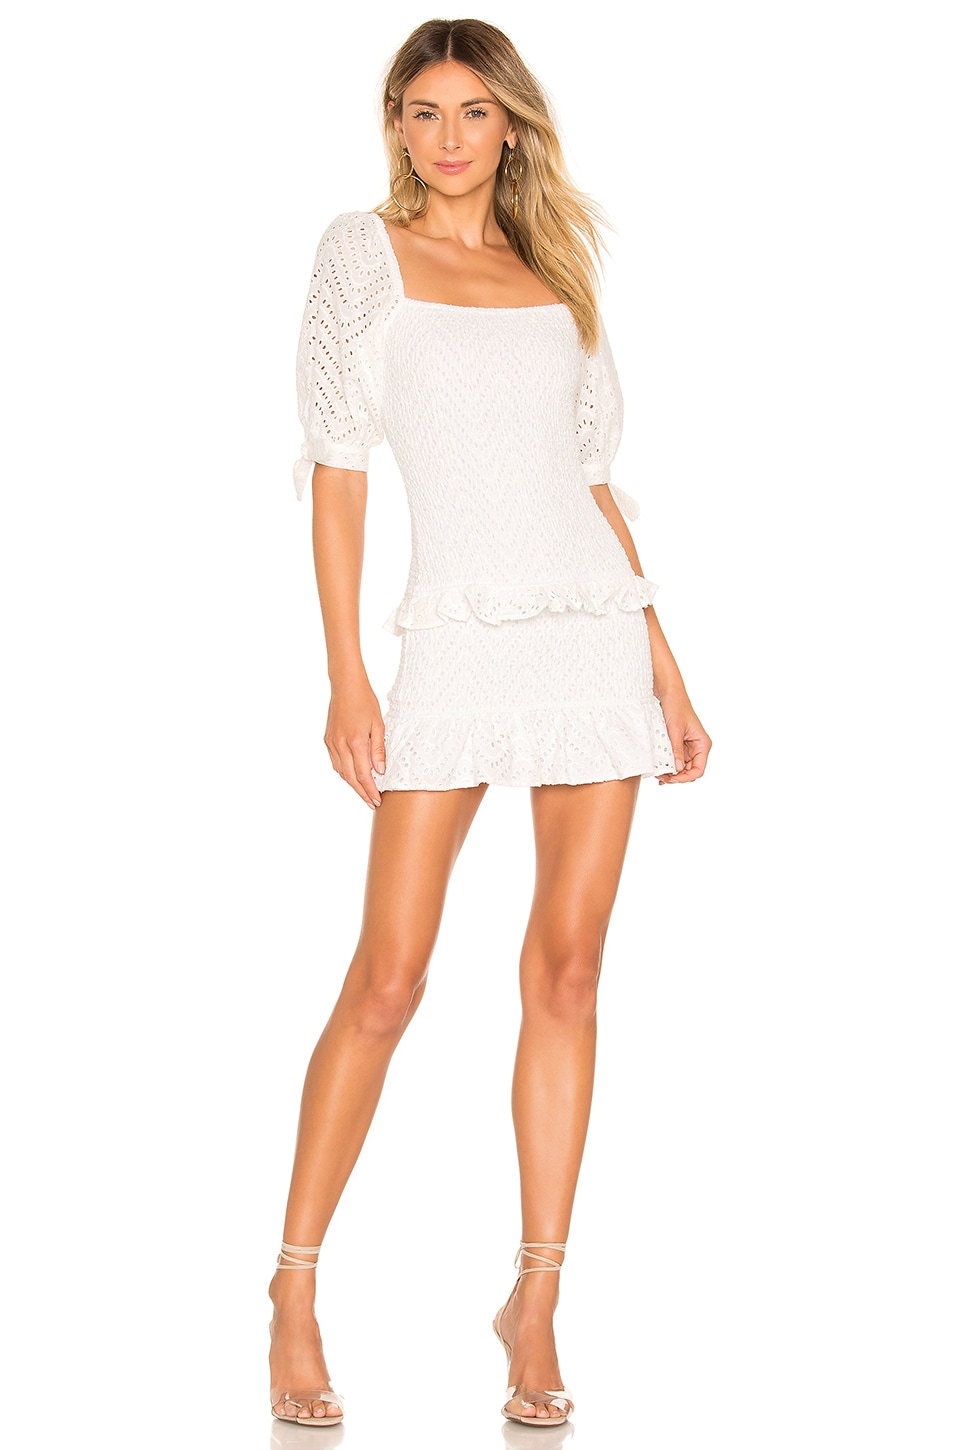 Lovers + Friends ROBE COURTE KATHLEEN